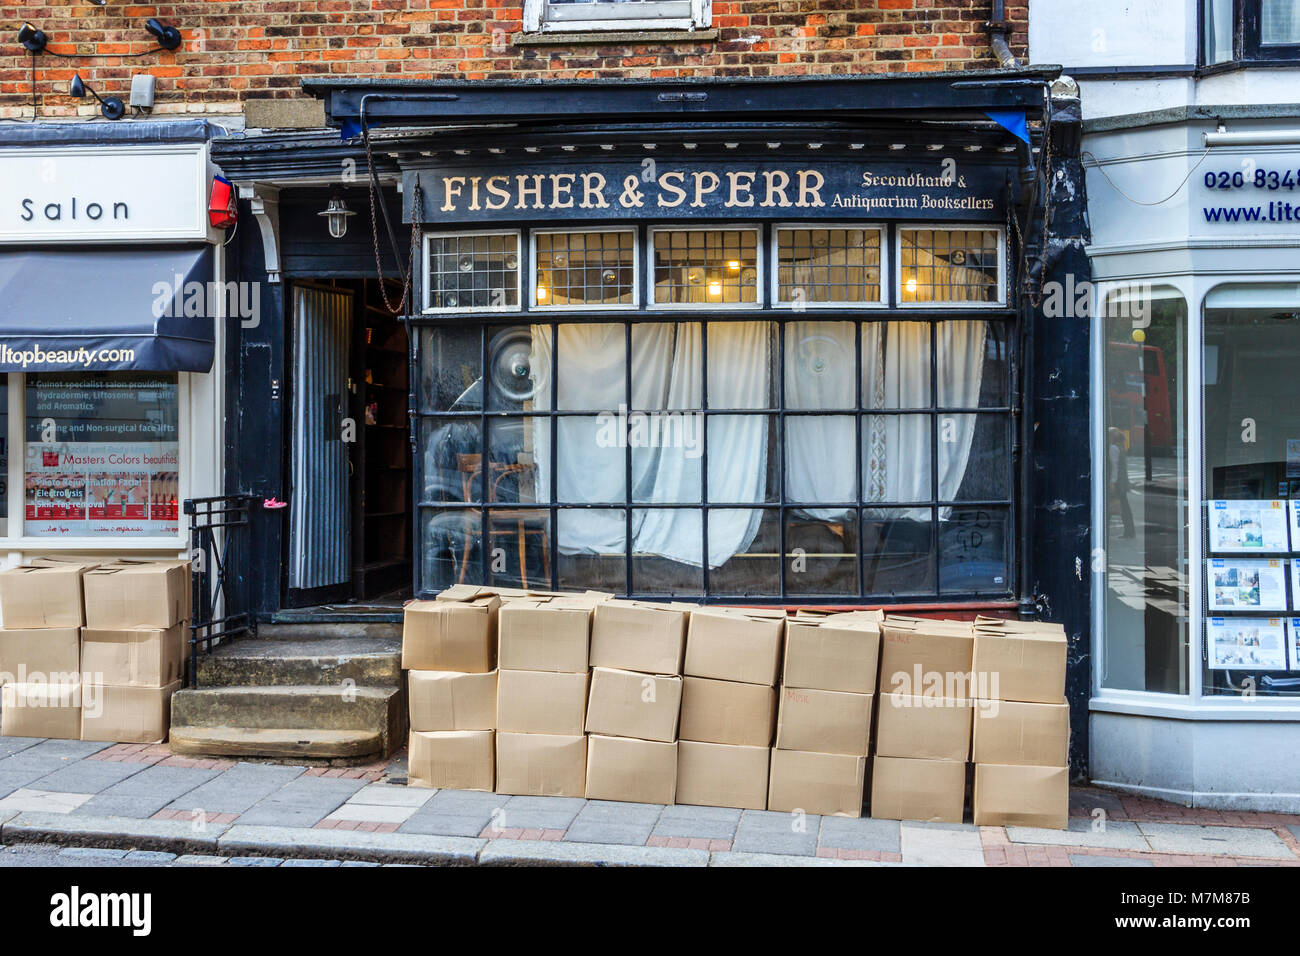 Fisher & Sperr antiquarian bookshop, Highgate, UK, in the process of closing down, June 2011 - Stock Image